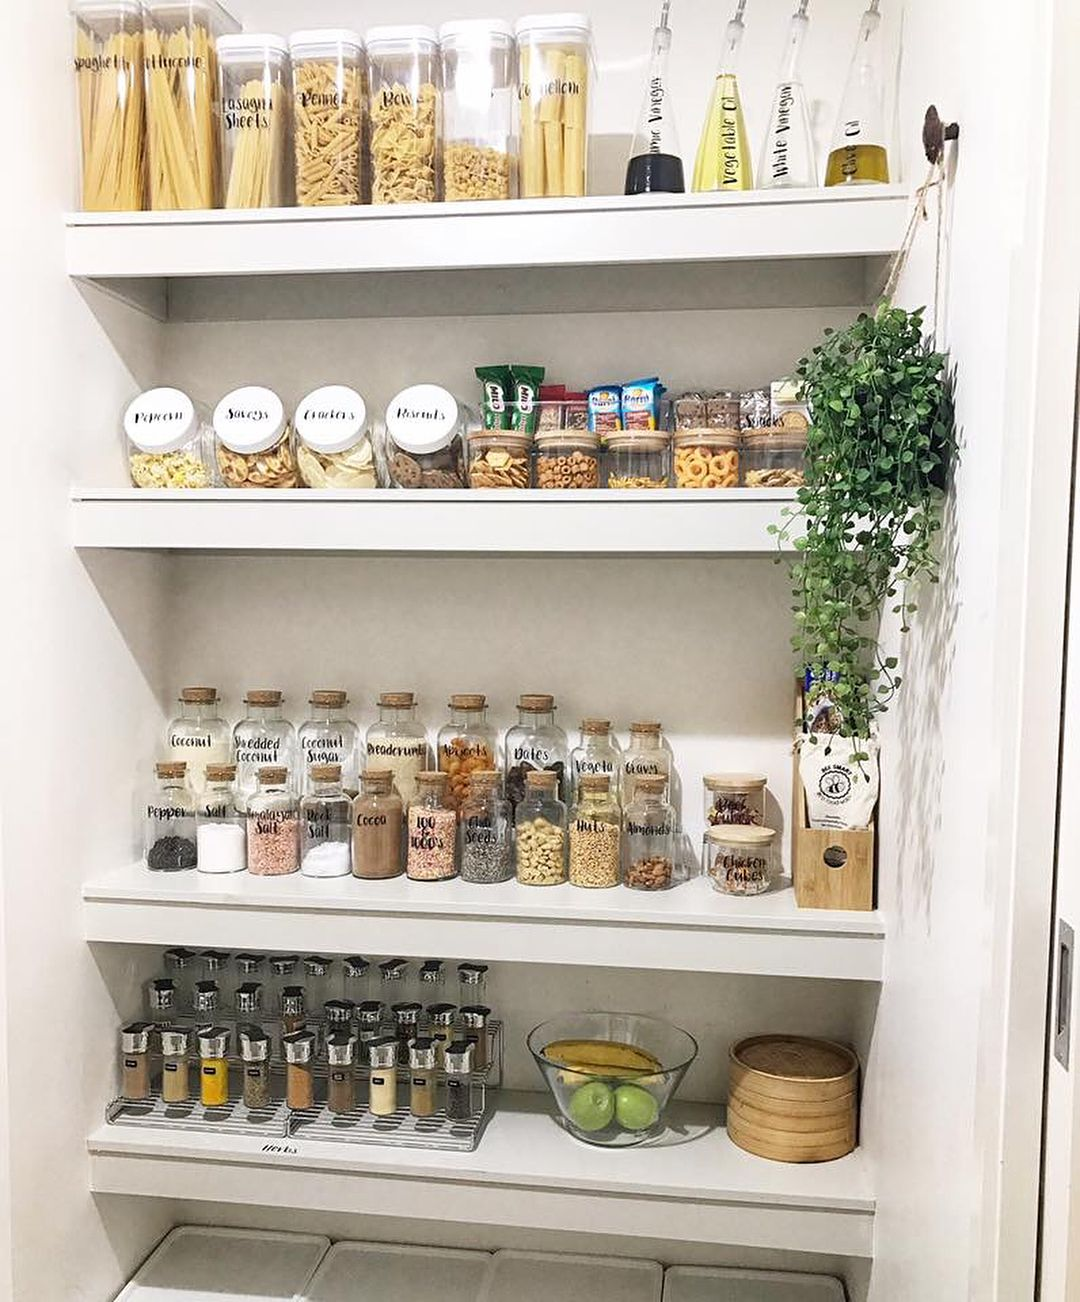 "Pantry Organisation Labels On Instagram: ""Pantry Bliss"